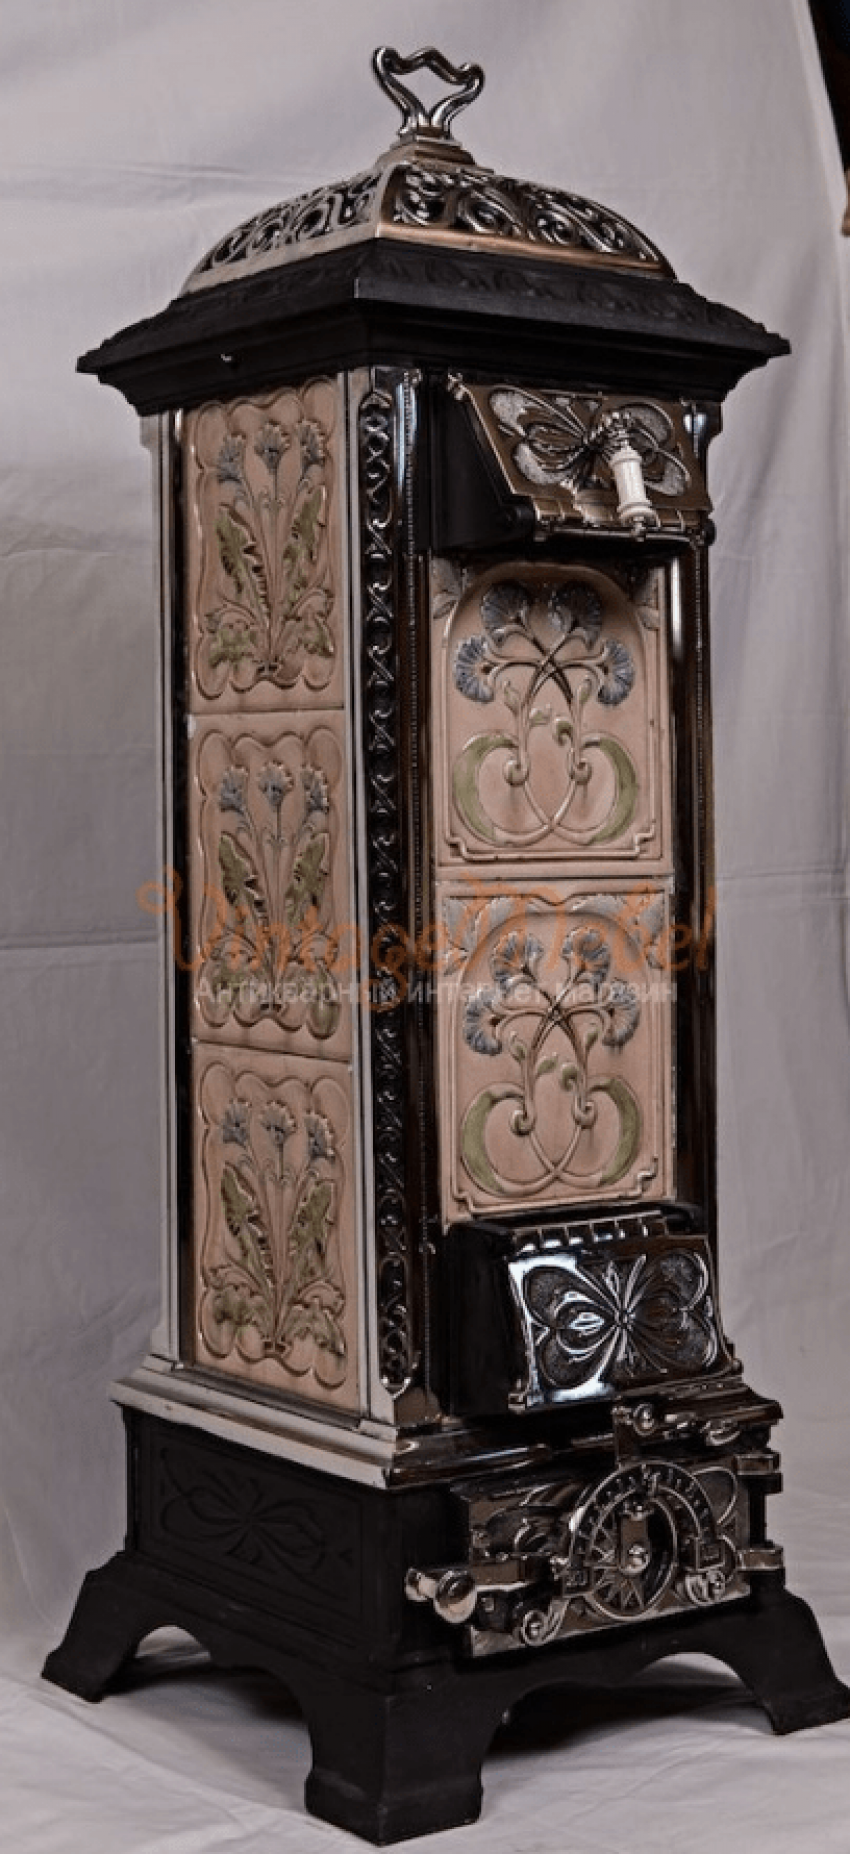 An antique stove. Germany 1900год - photo 1